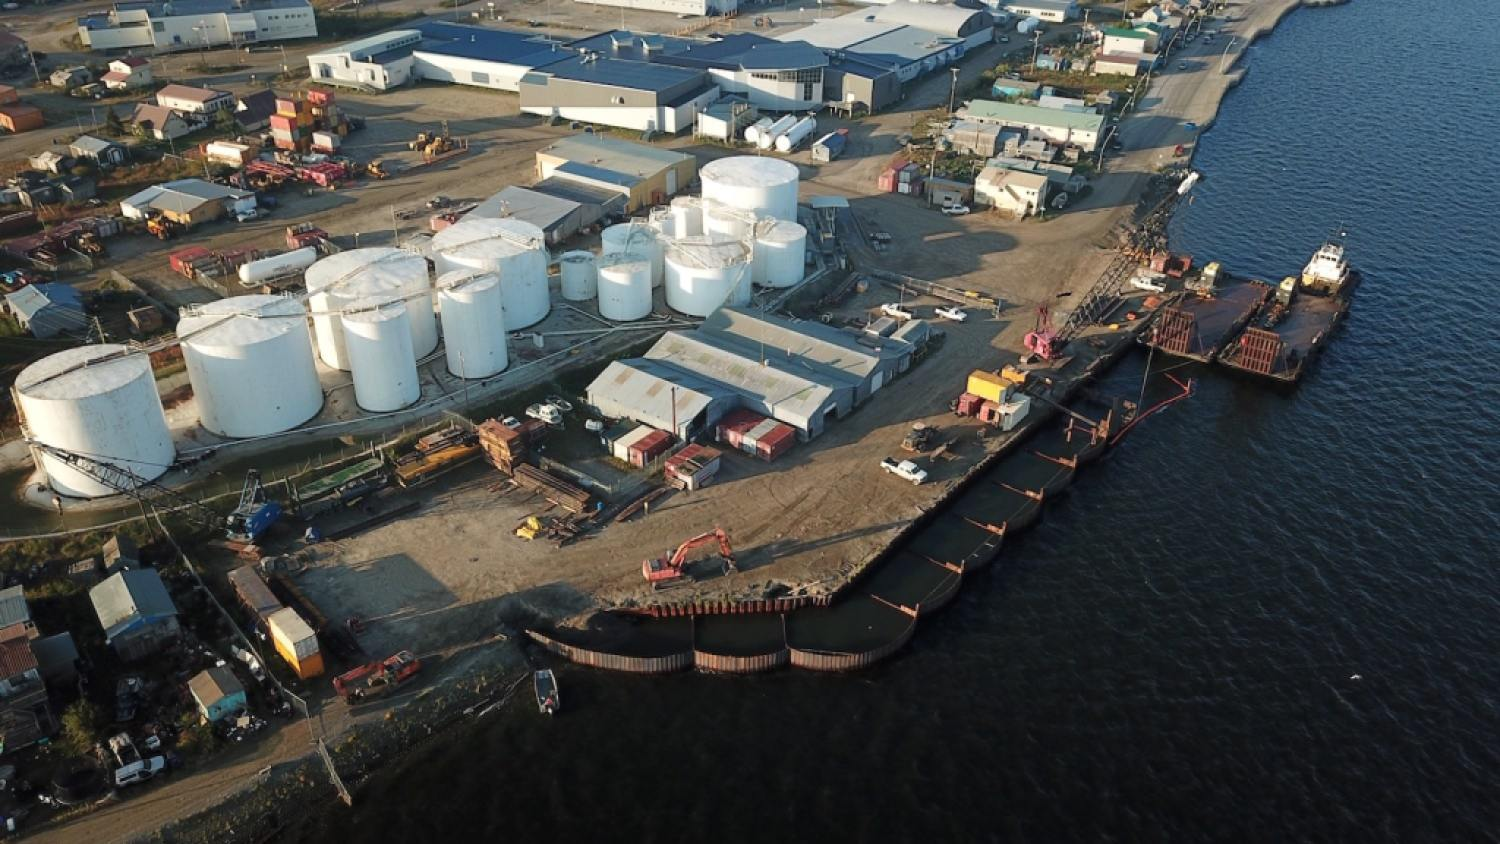 Crowley has expanded the Kotzebue dock to support continuing, reliable fuel and cargo deliveries.